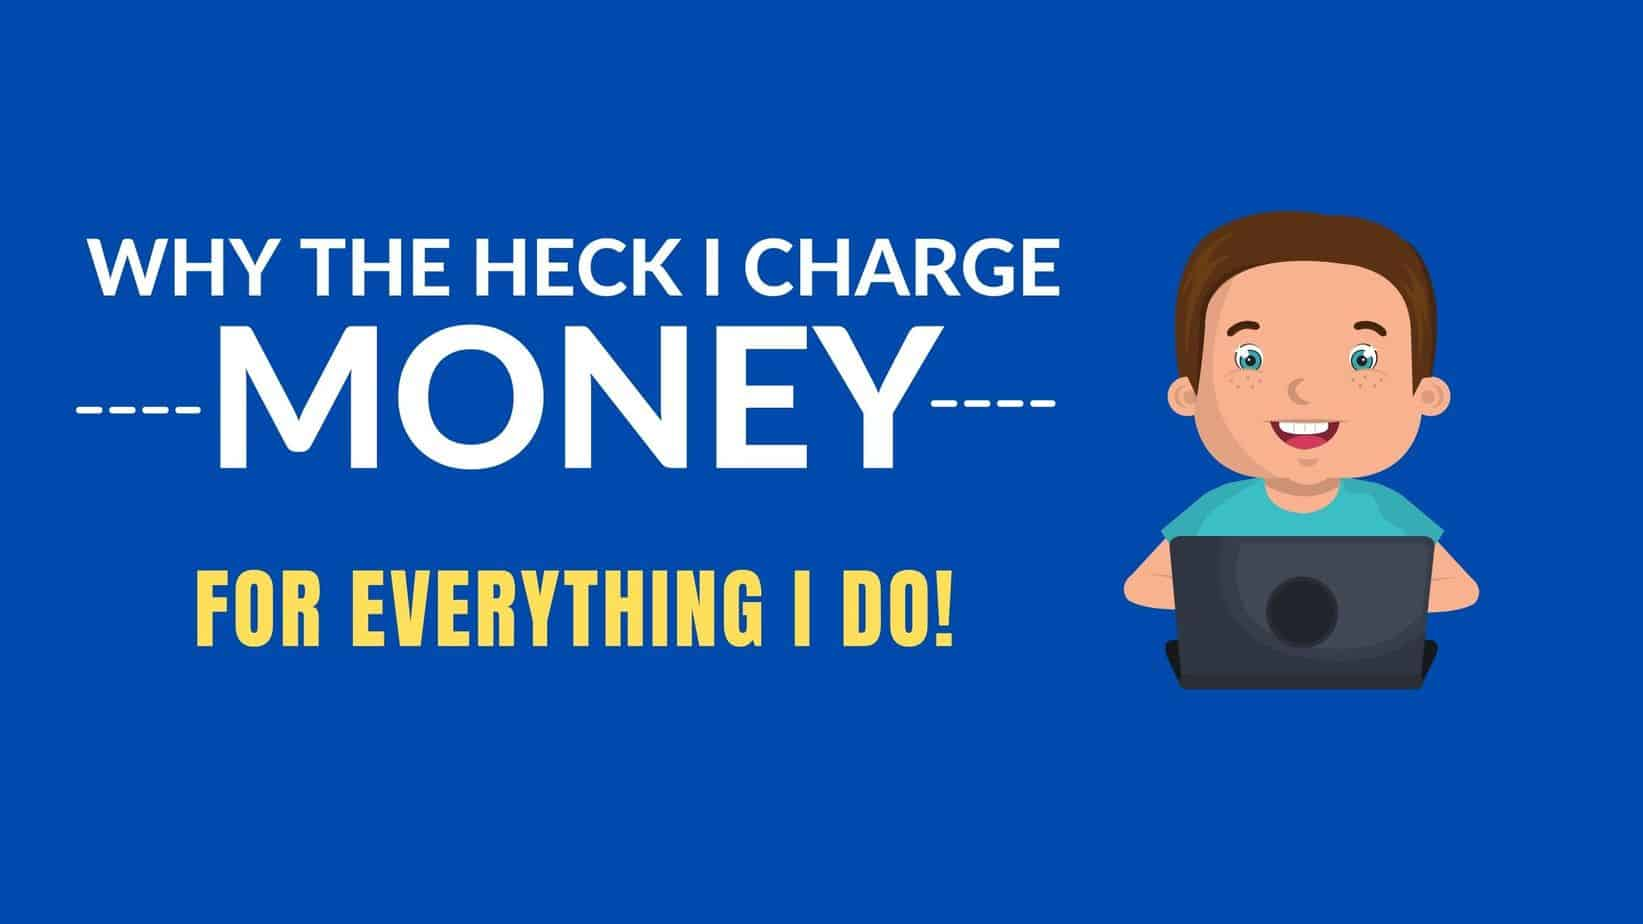 WHY I CHARGE MONEY FOR TRAININGS I DO.